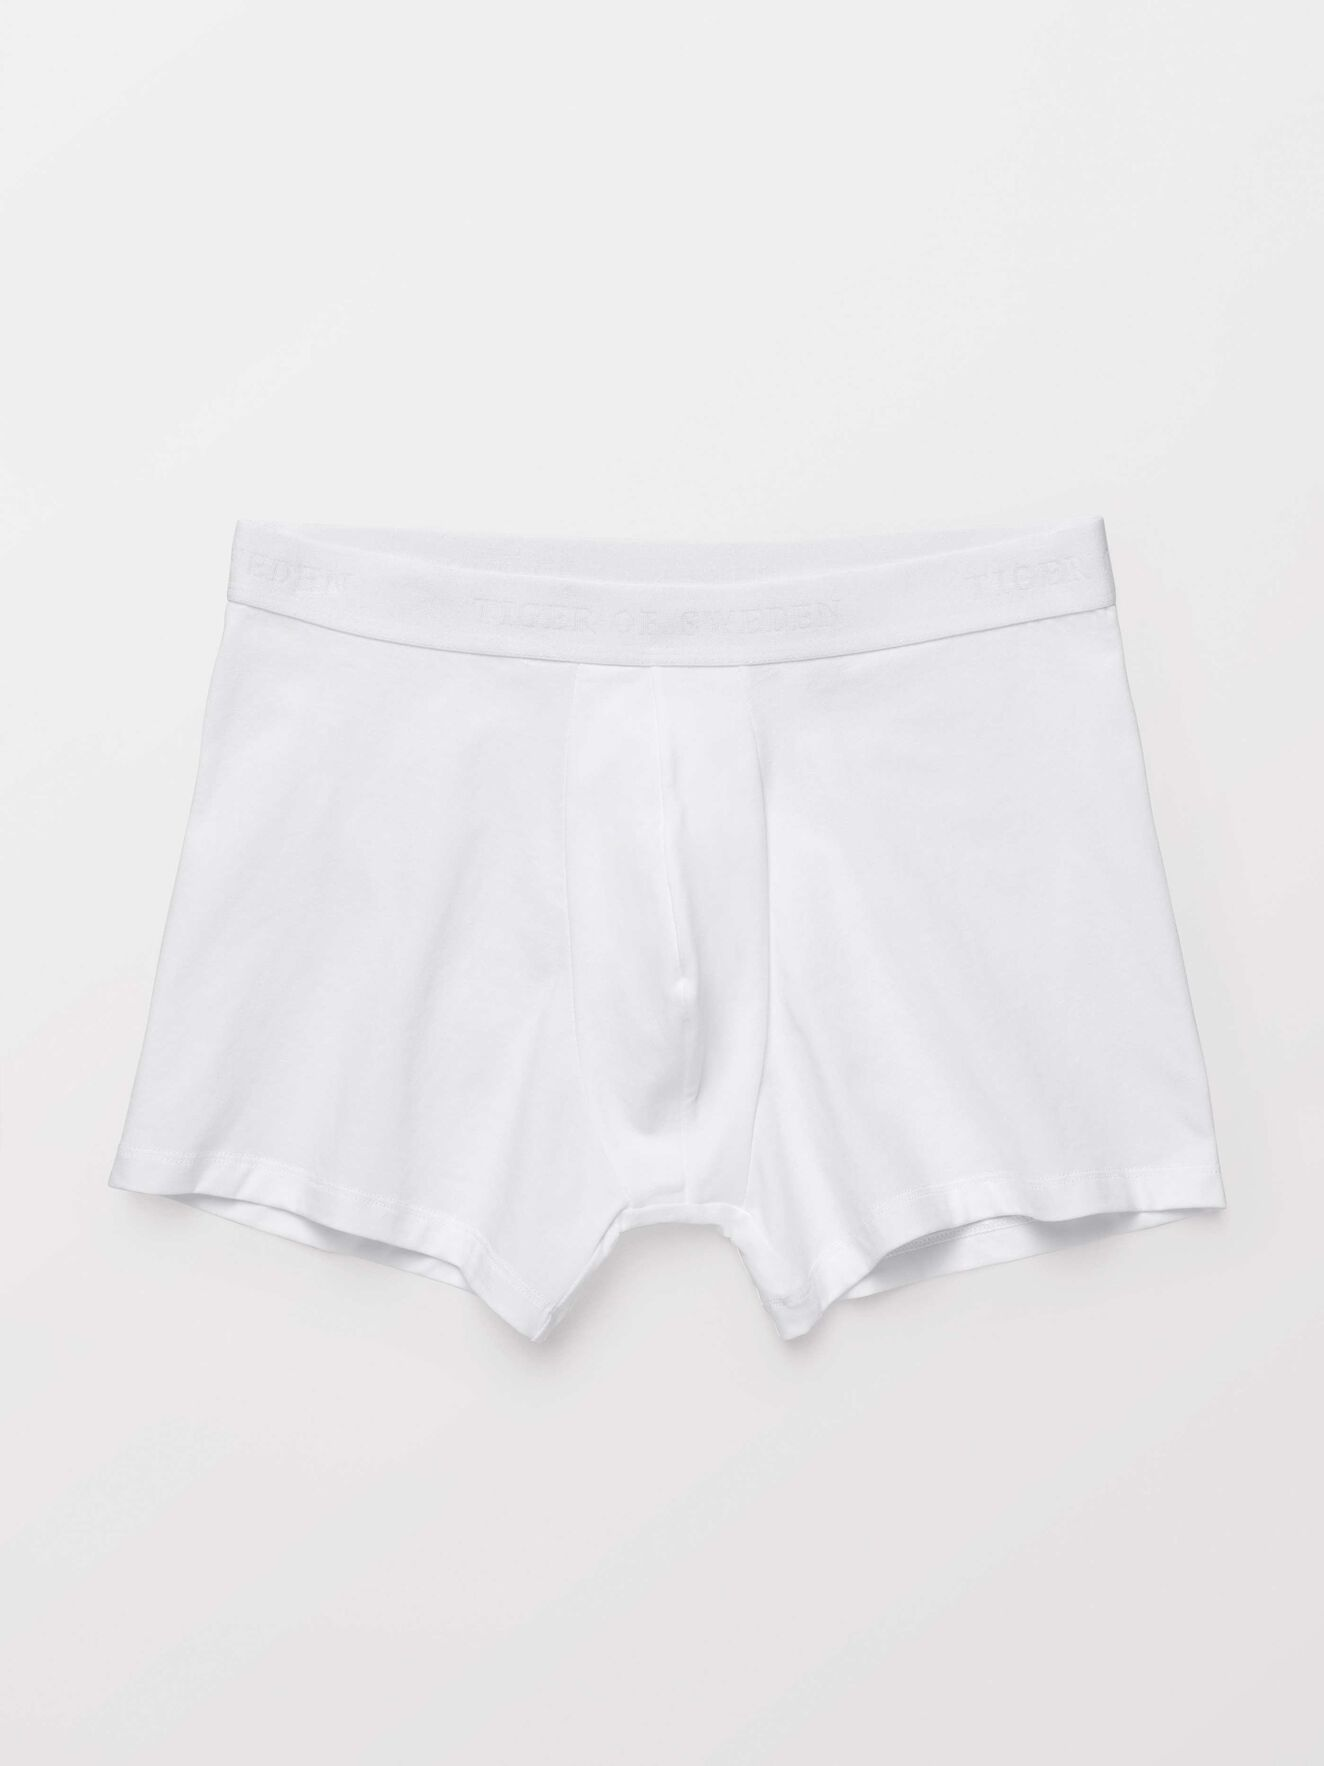 Osslund Boxershorts in Pure white from Tiger of Sweden